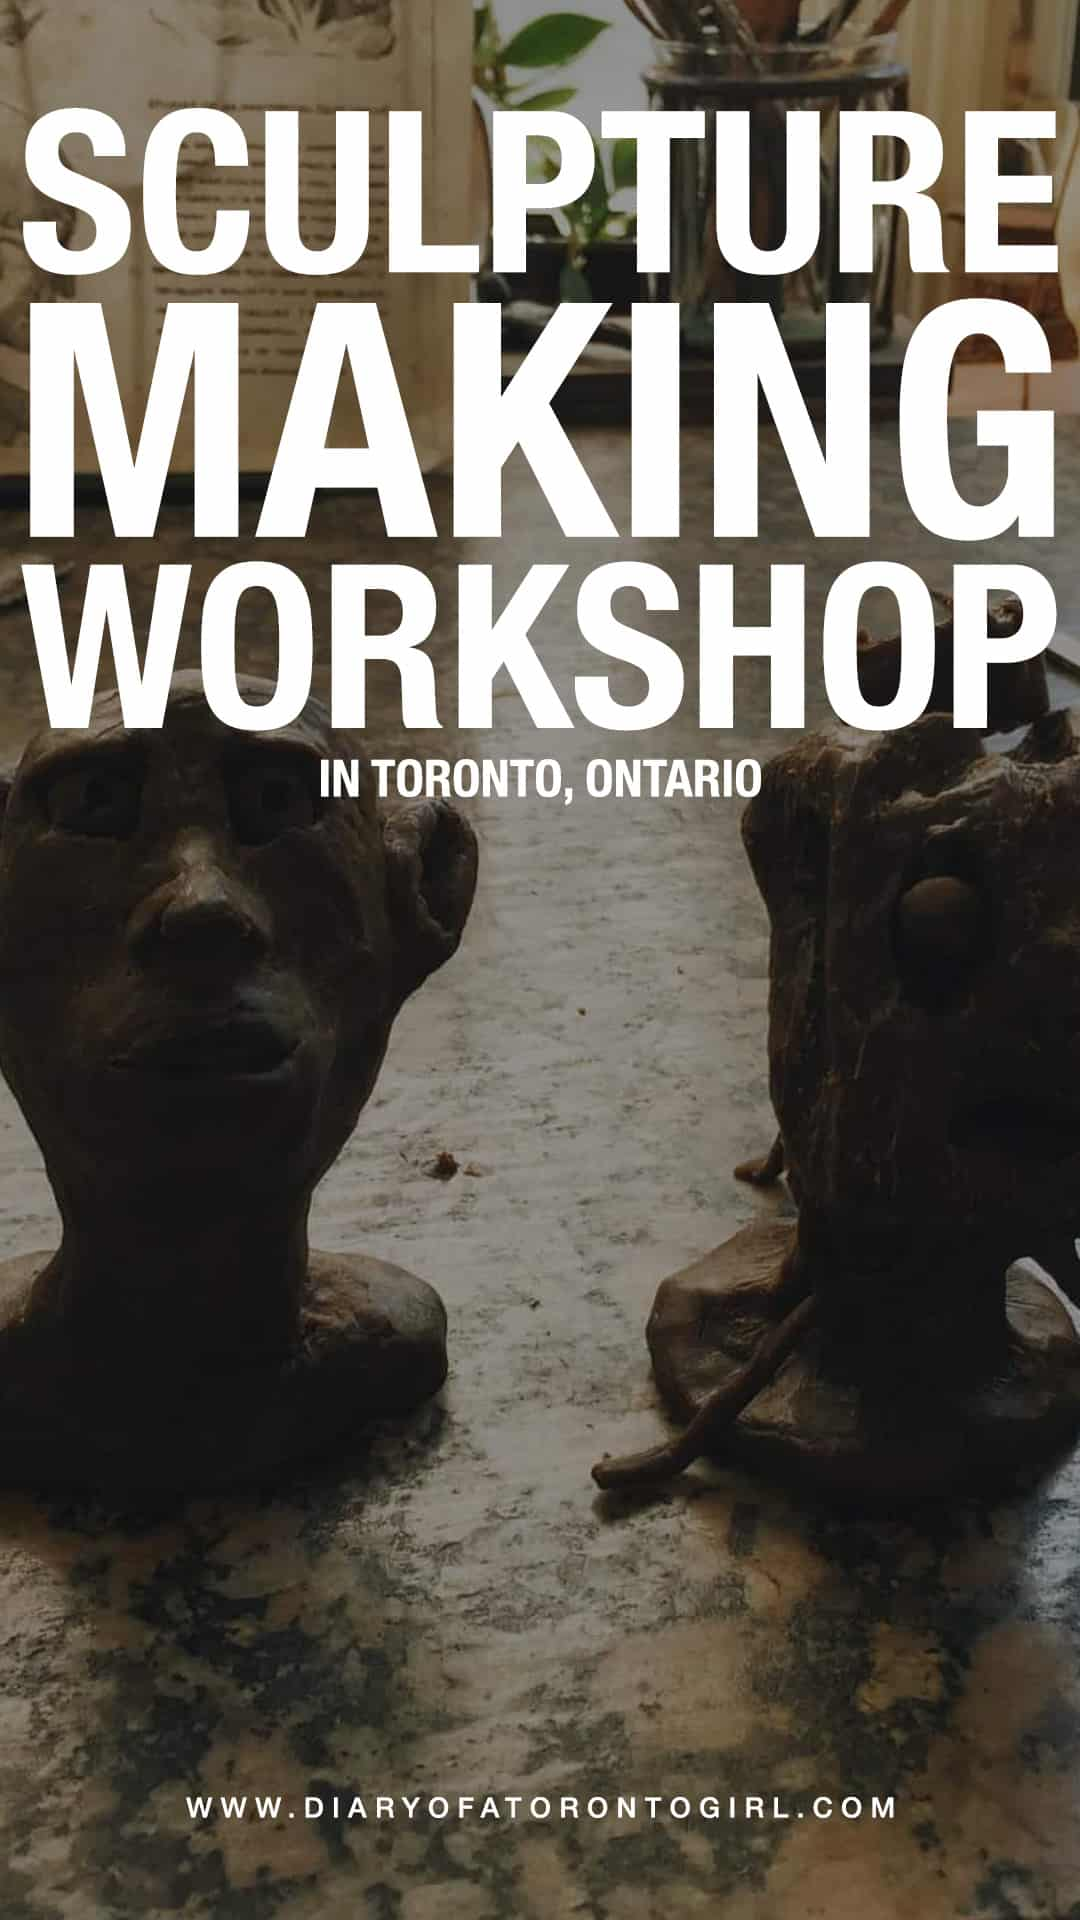 Looking to try out a sculpture making class in Toronto? Here's how our workshop experience went at a local art studio in downtown Toronto, Ontario!